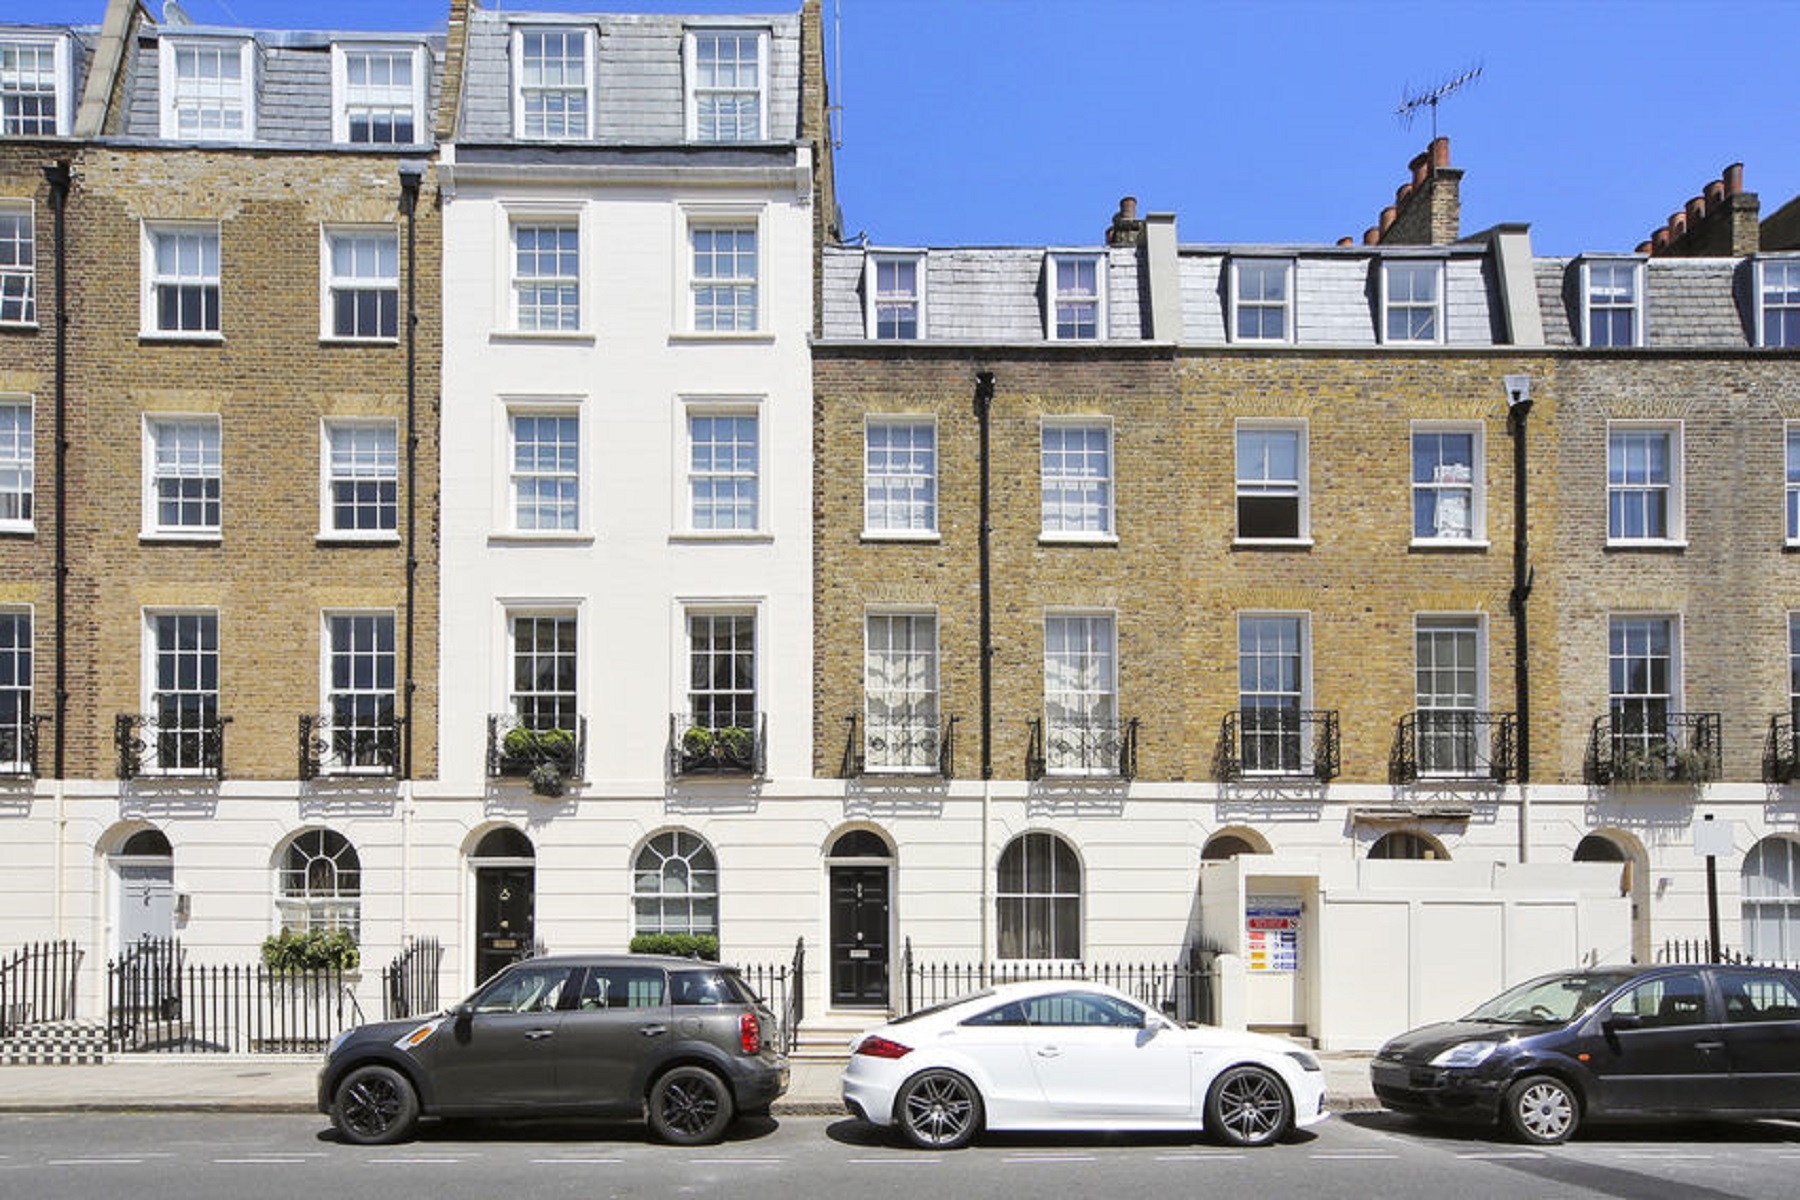 Single Family Home for Sale at Eaton Terrace London, England, United Kingdom